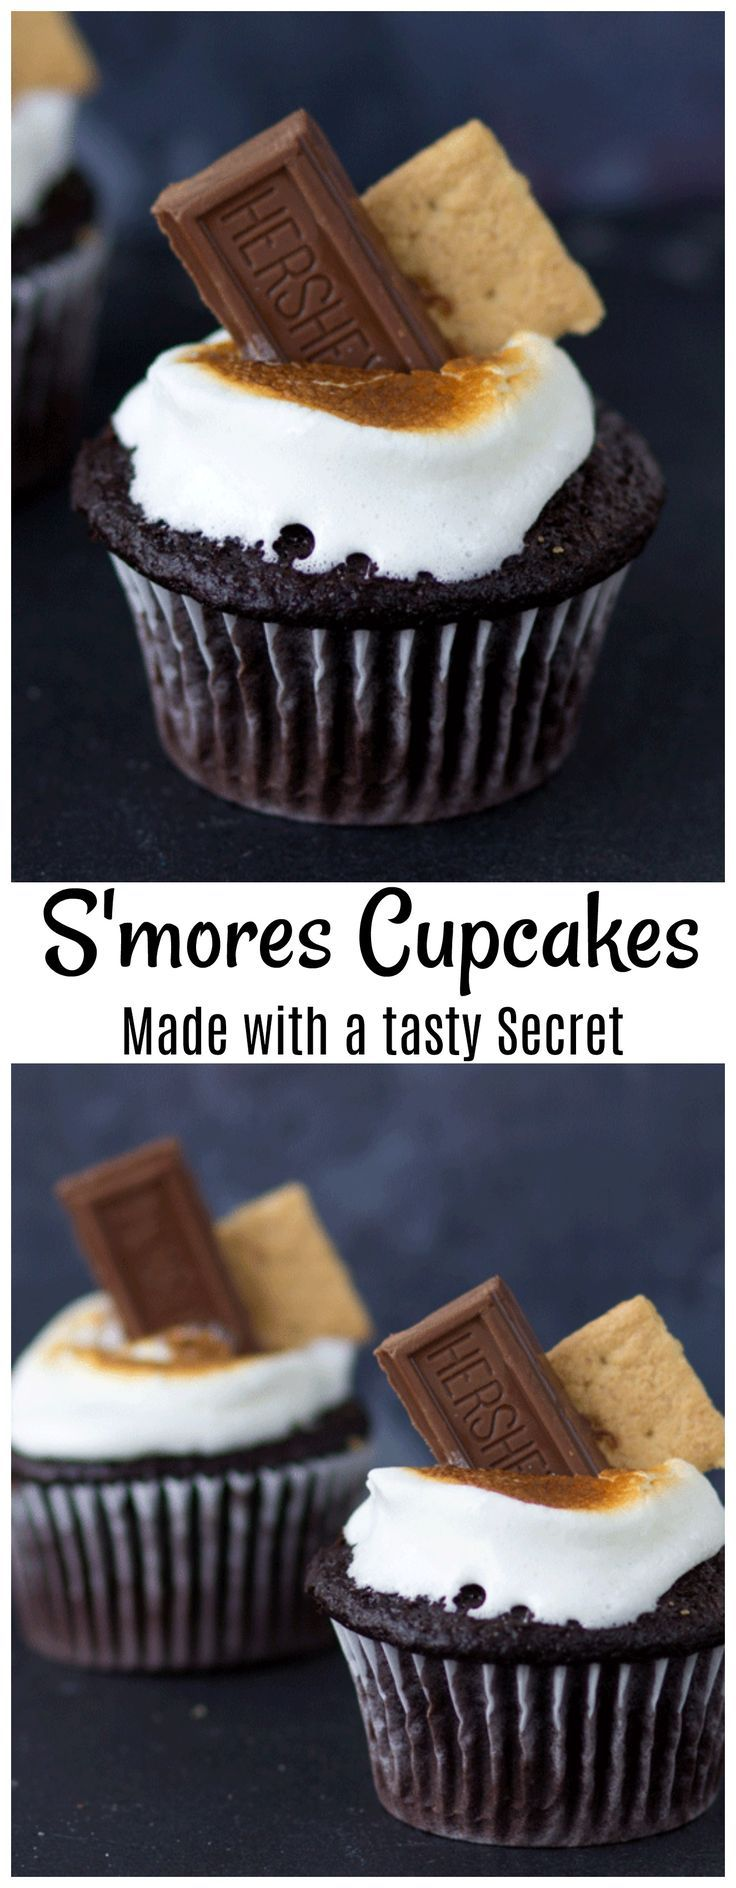 S'mores Cupcakes with Secret Filling! These S'Mores cupcakes are the perfect way to get your s'more craving fixed when you can't get to a campfire!